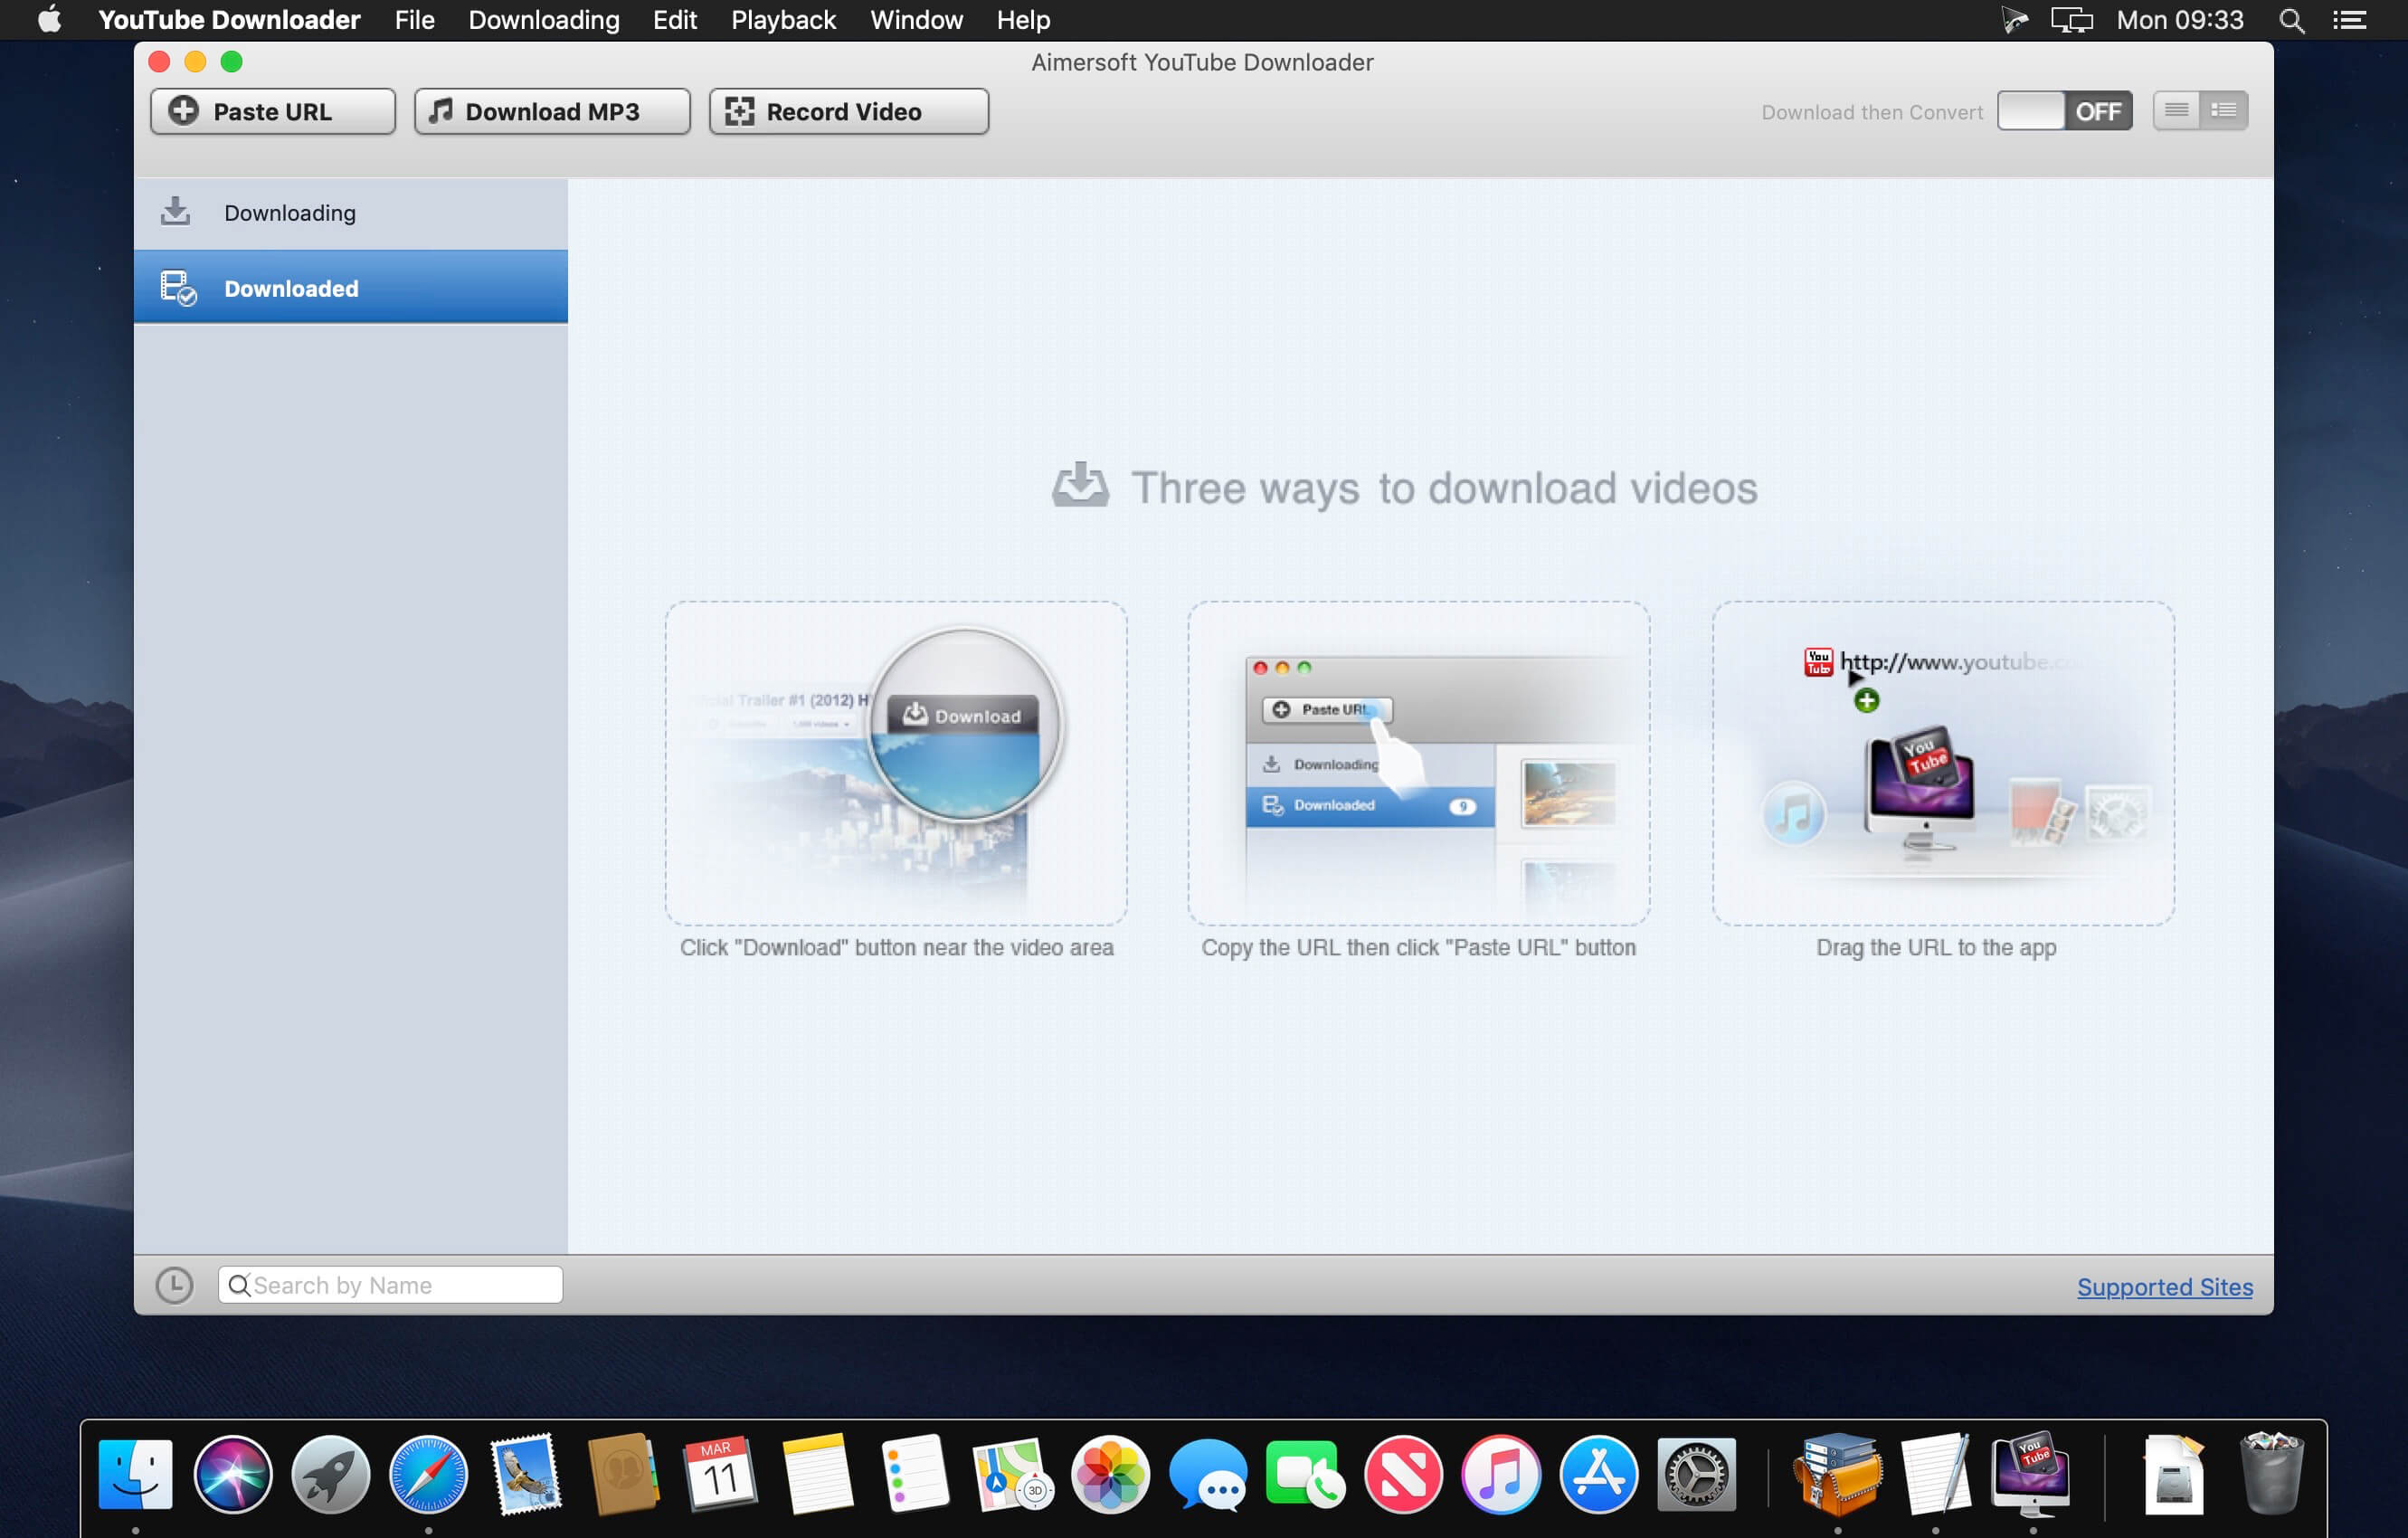 Aimersoft YouTube Downloader for Mac 5 7 3 download | macOS